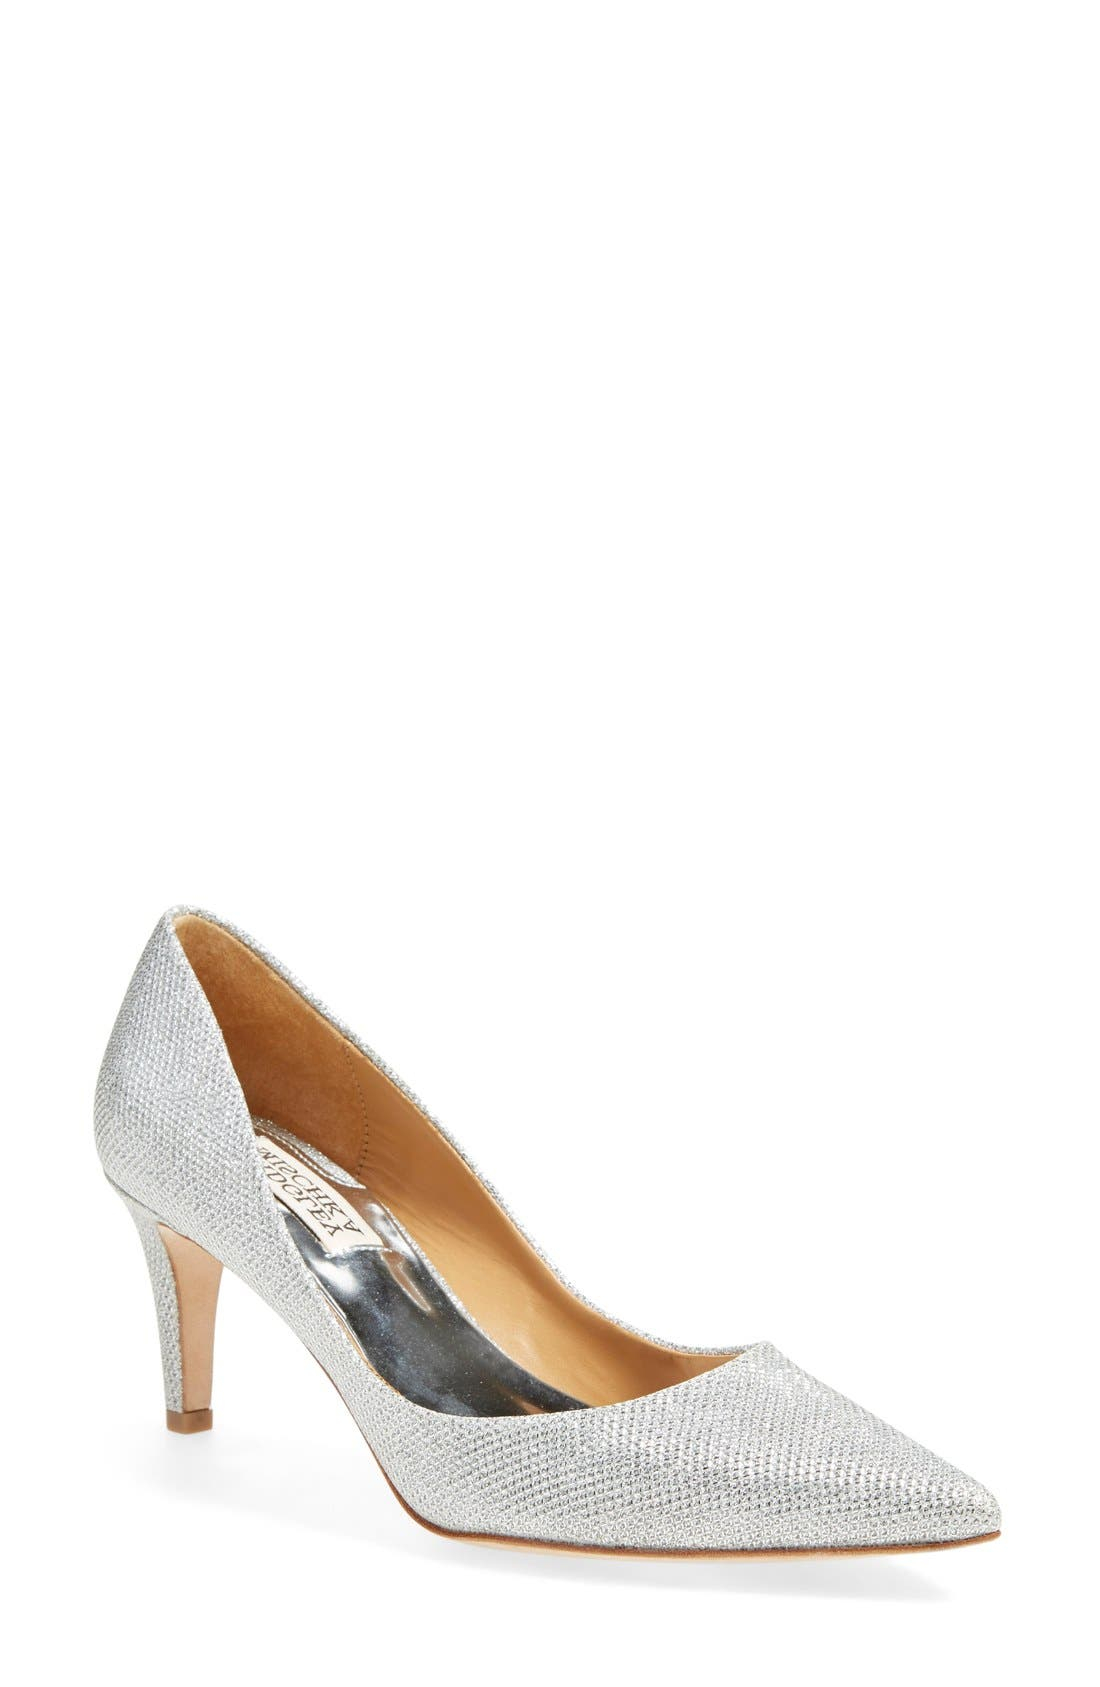 Alternate Image 1 Selected - Badgley Mischka 'Poise' Pointy Toe Pump (Women)